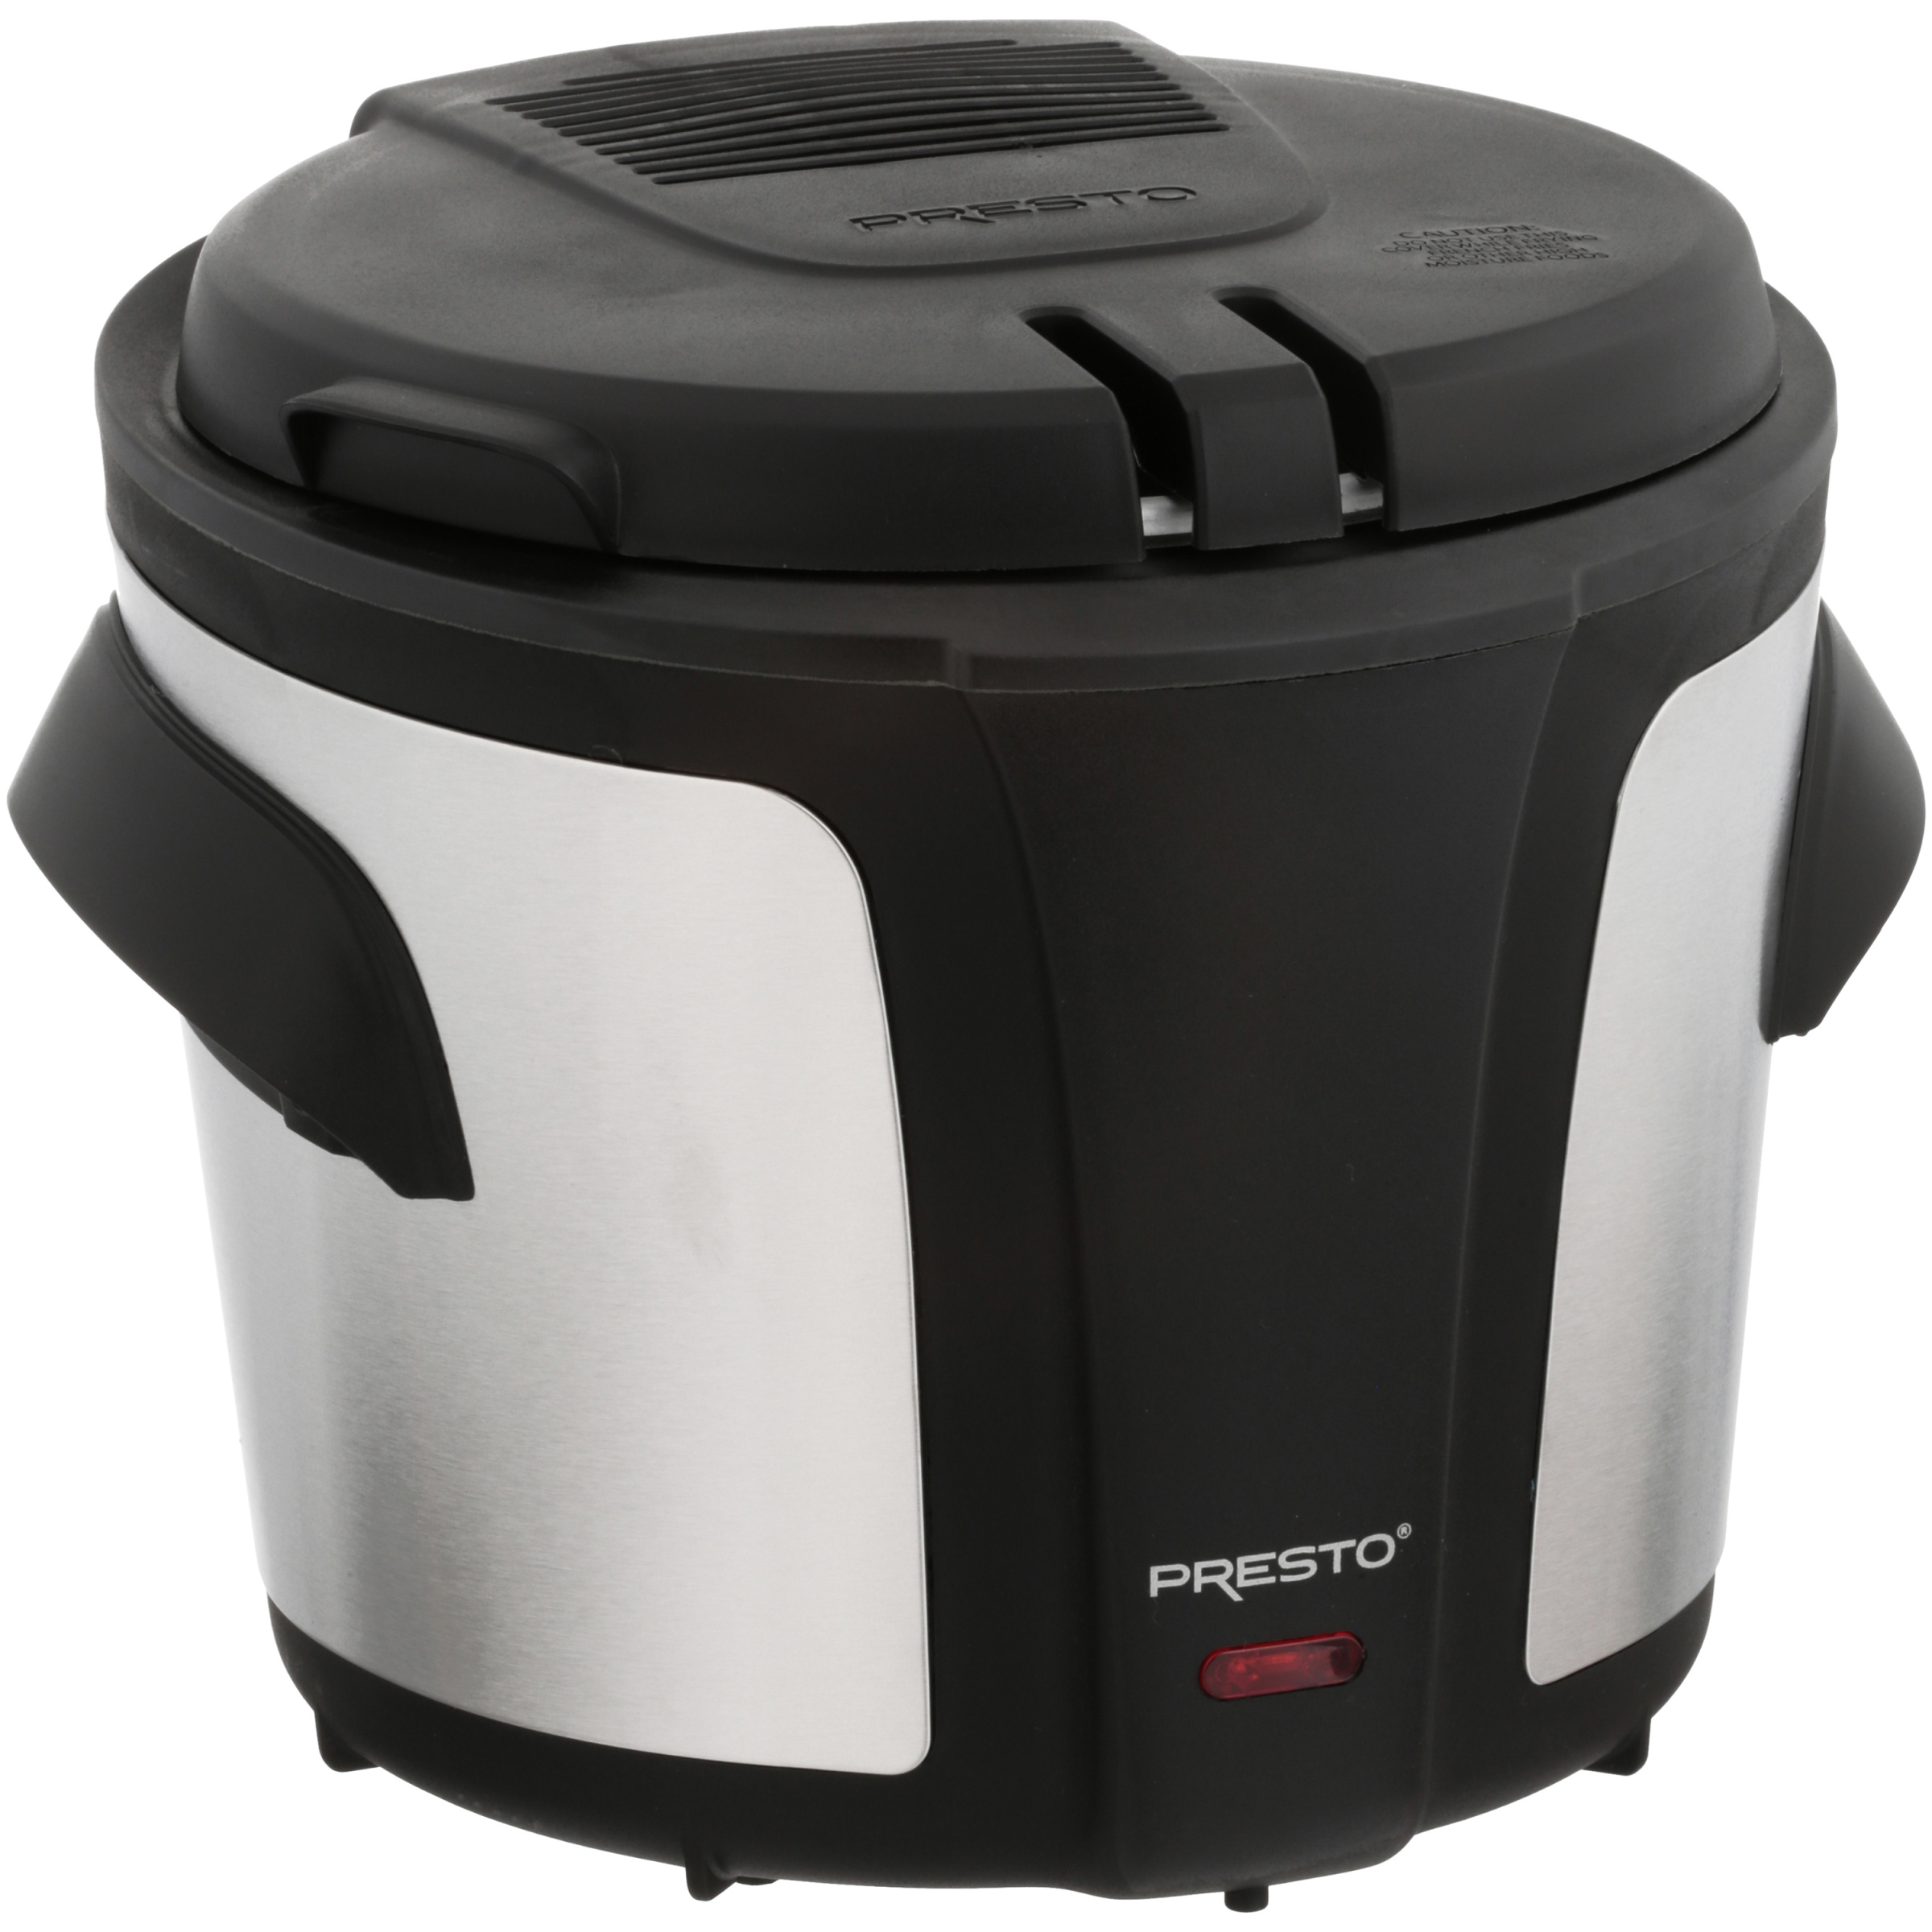 Presto® Stainless Steel Electric Deep Fryer